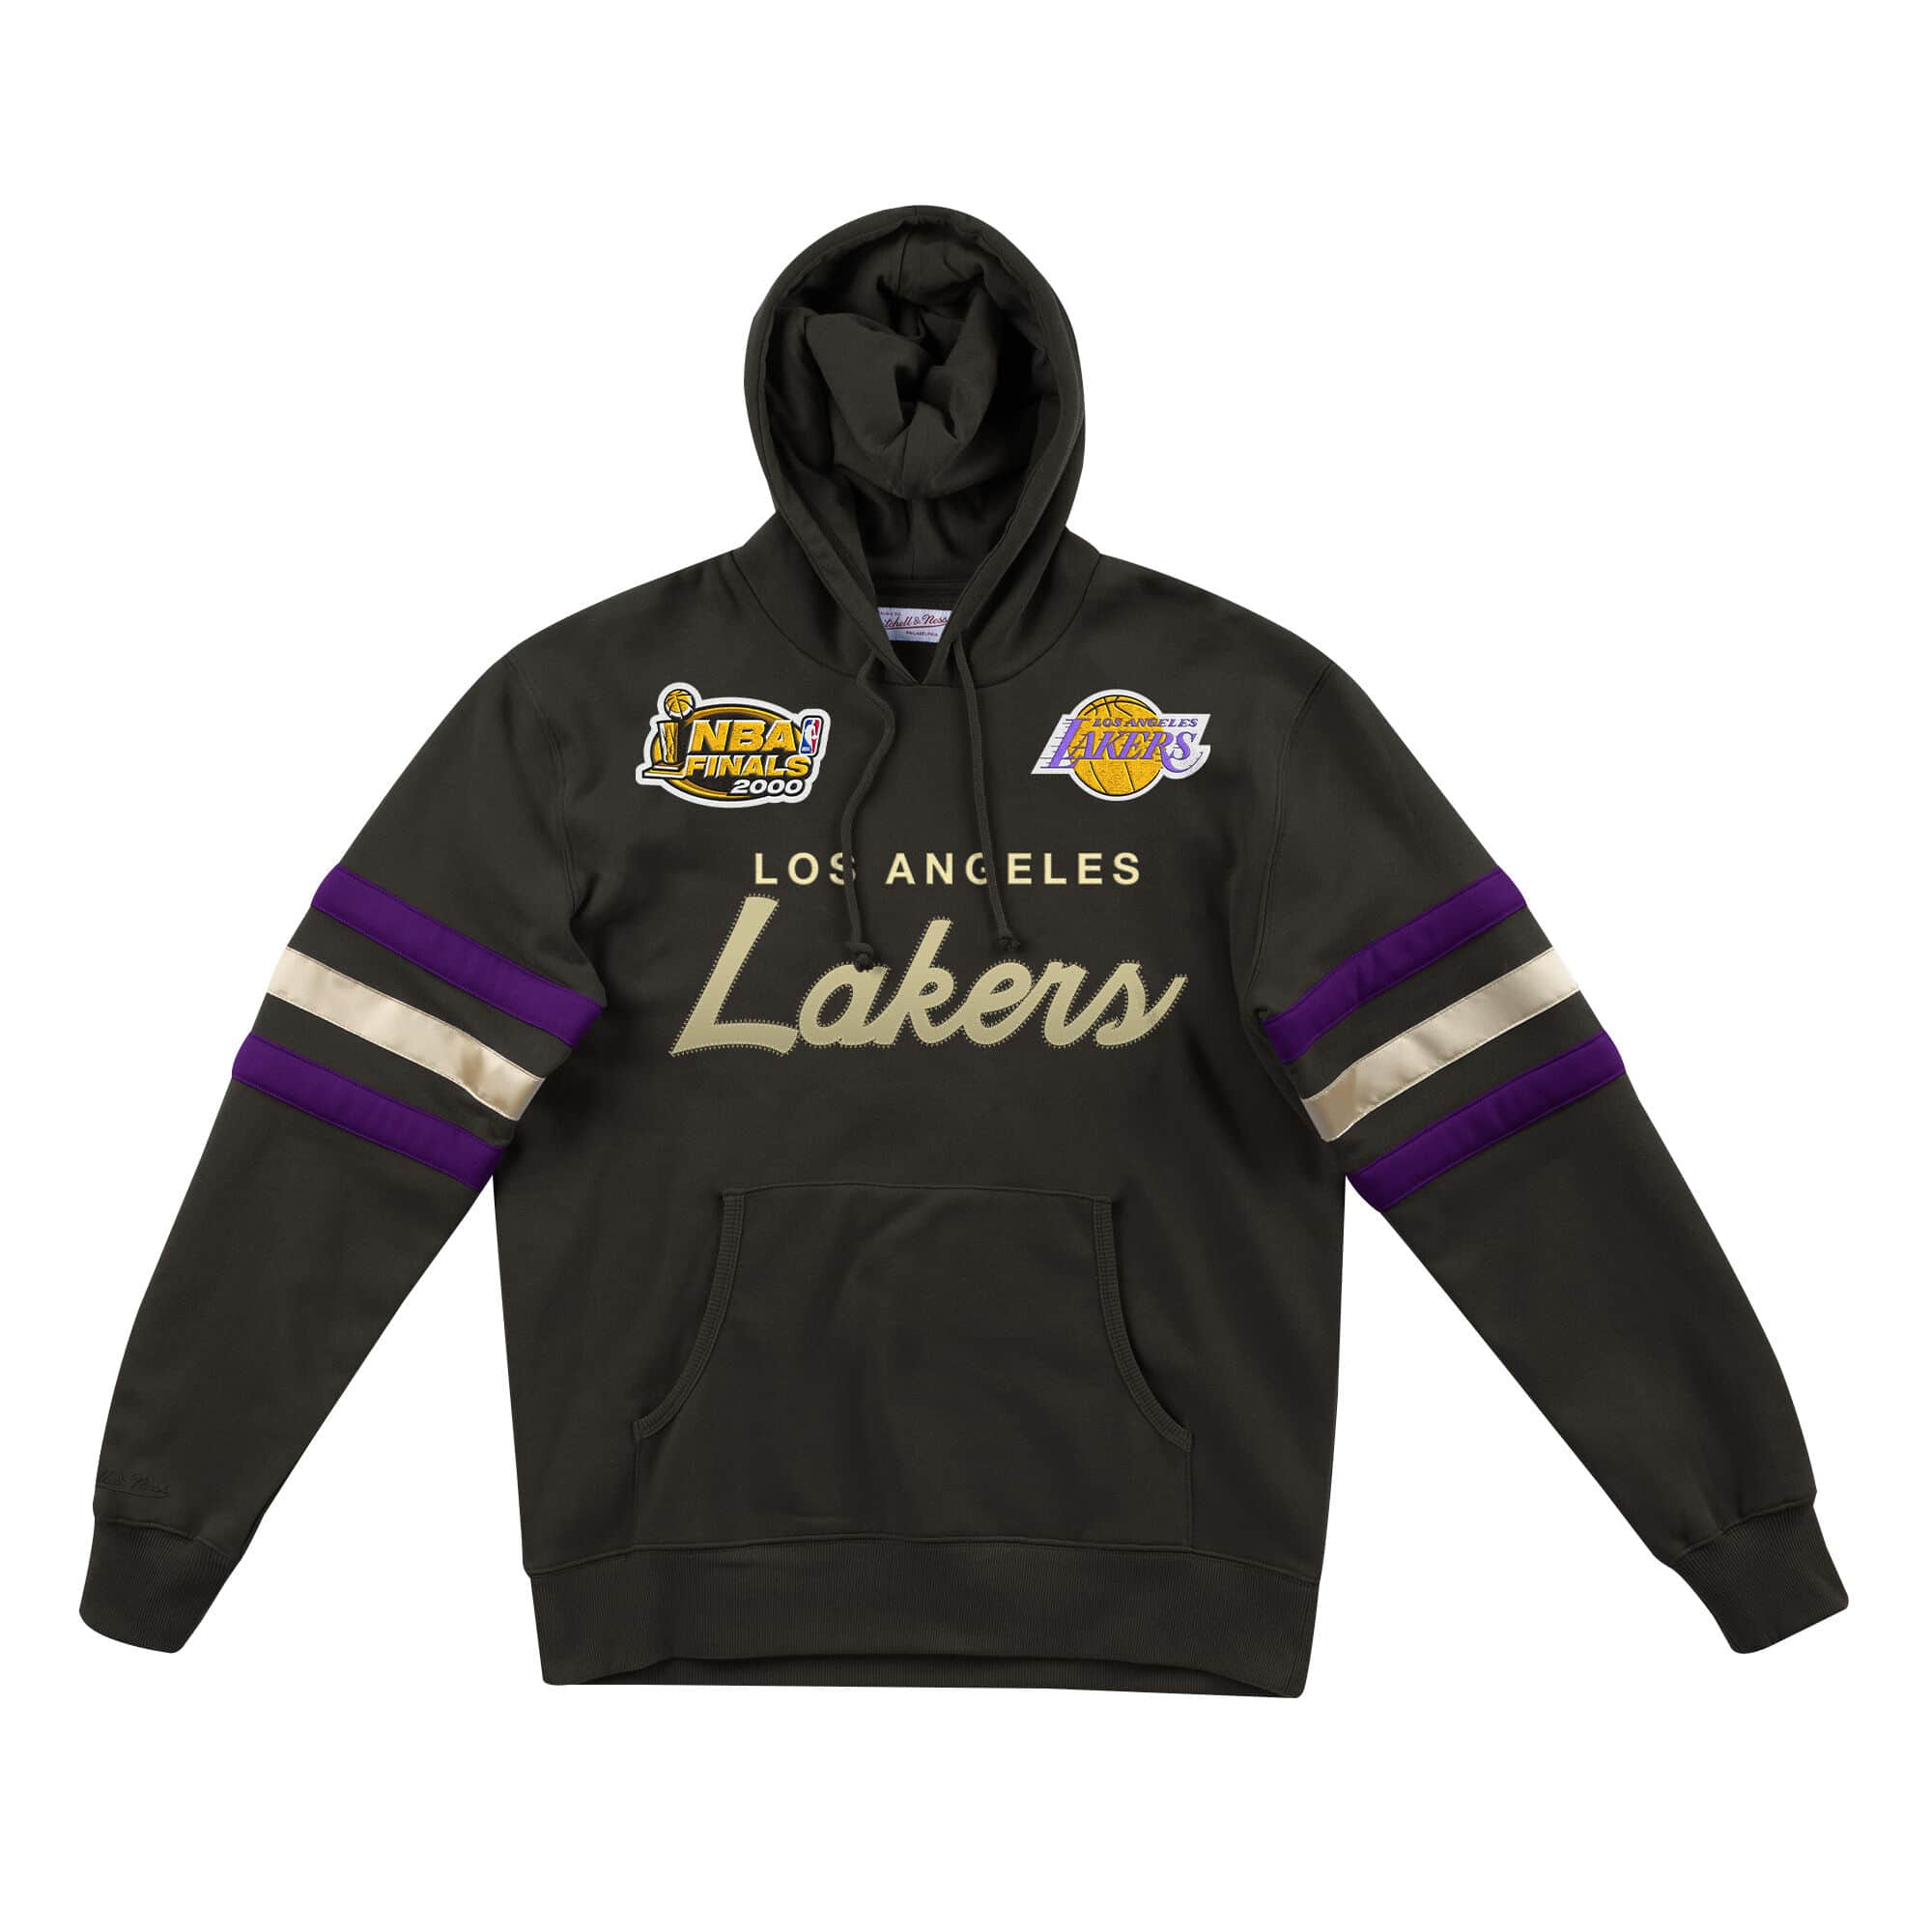 Los Angeles Lakers Championship Game Hoody West Wear